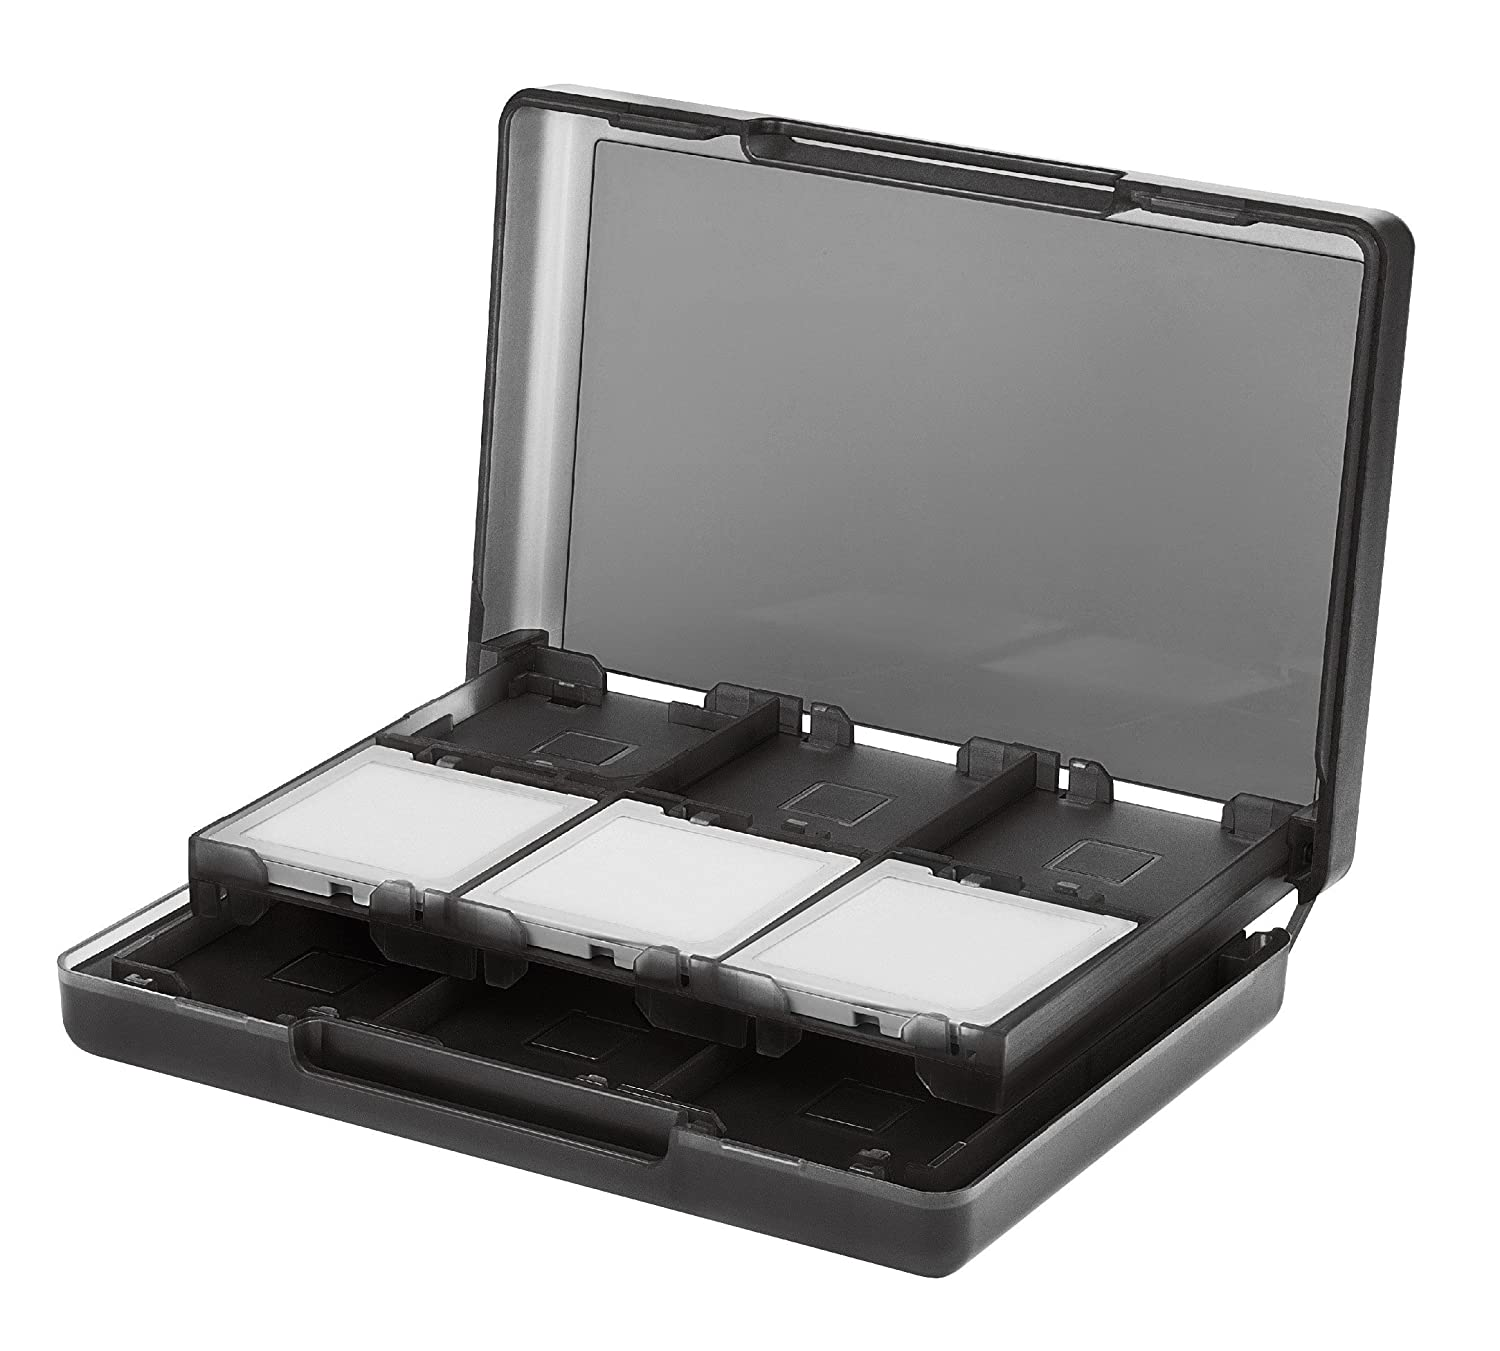 Amazon.com: AmazonBasics Nintendo 3DS Game Card Storage Case ...